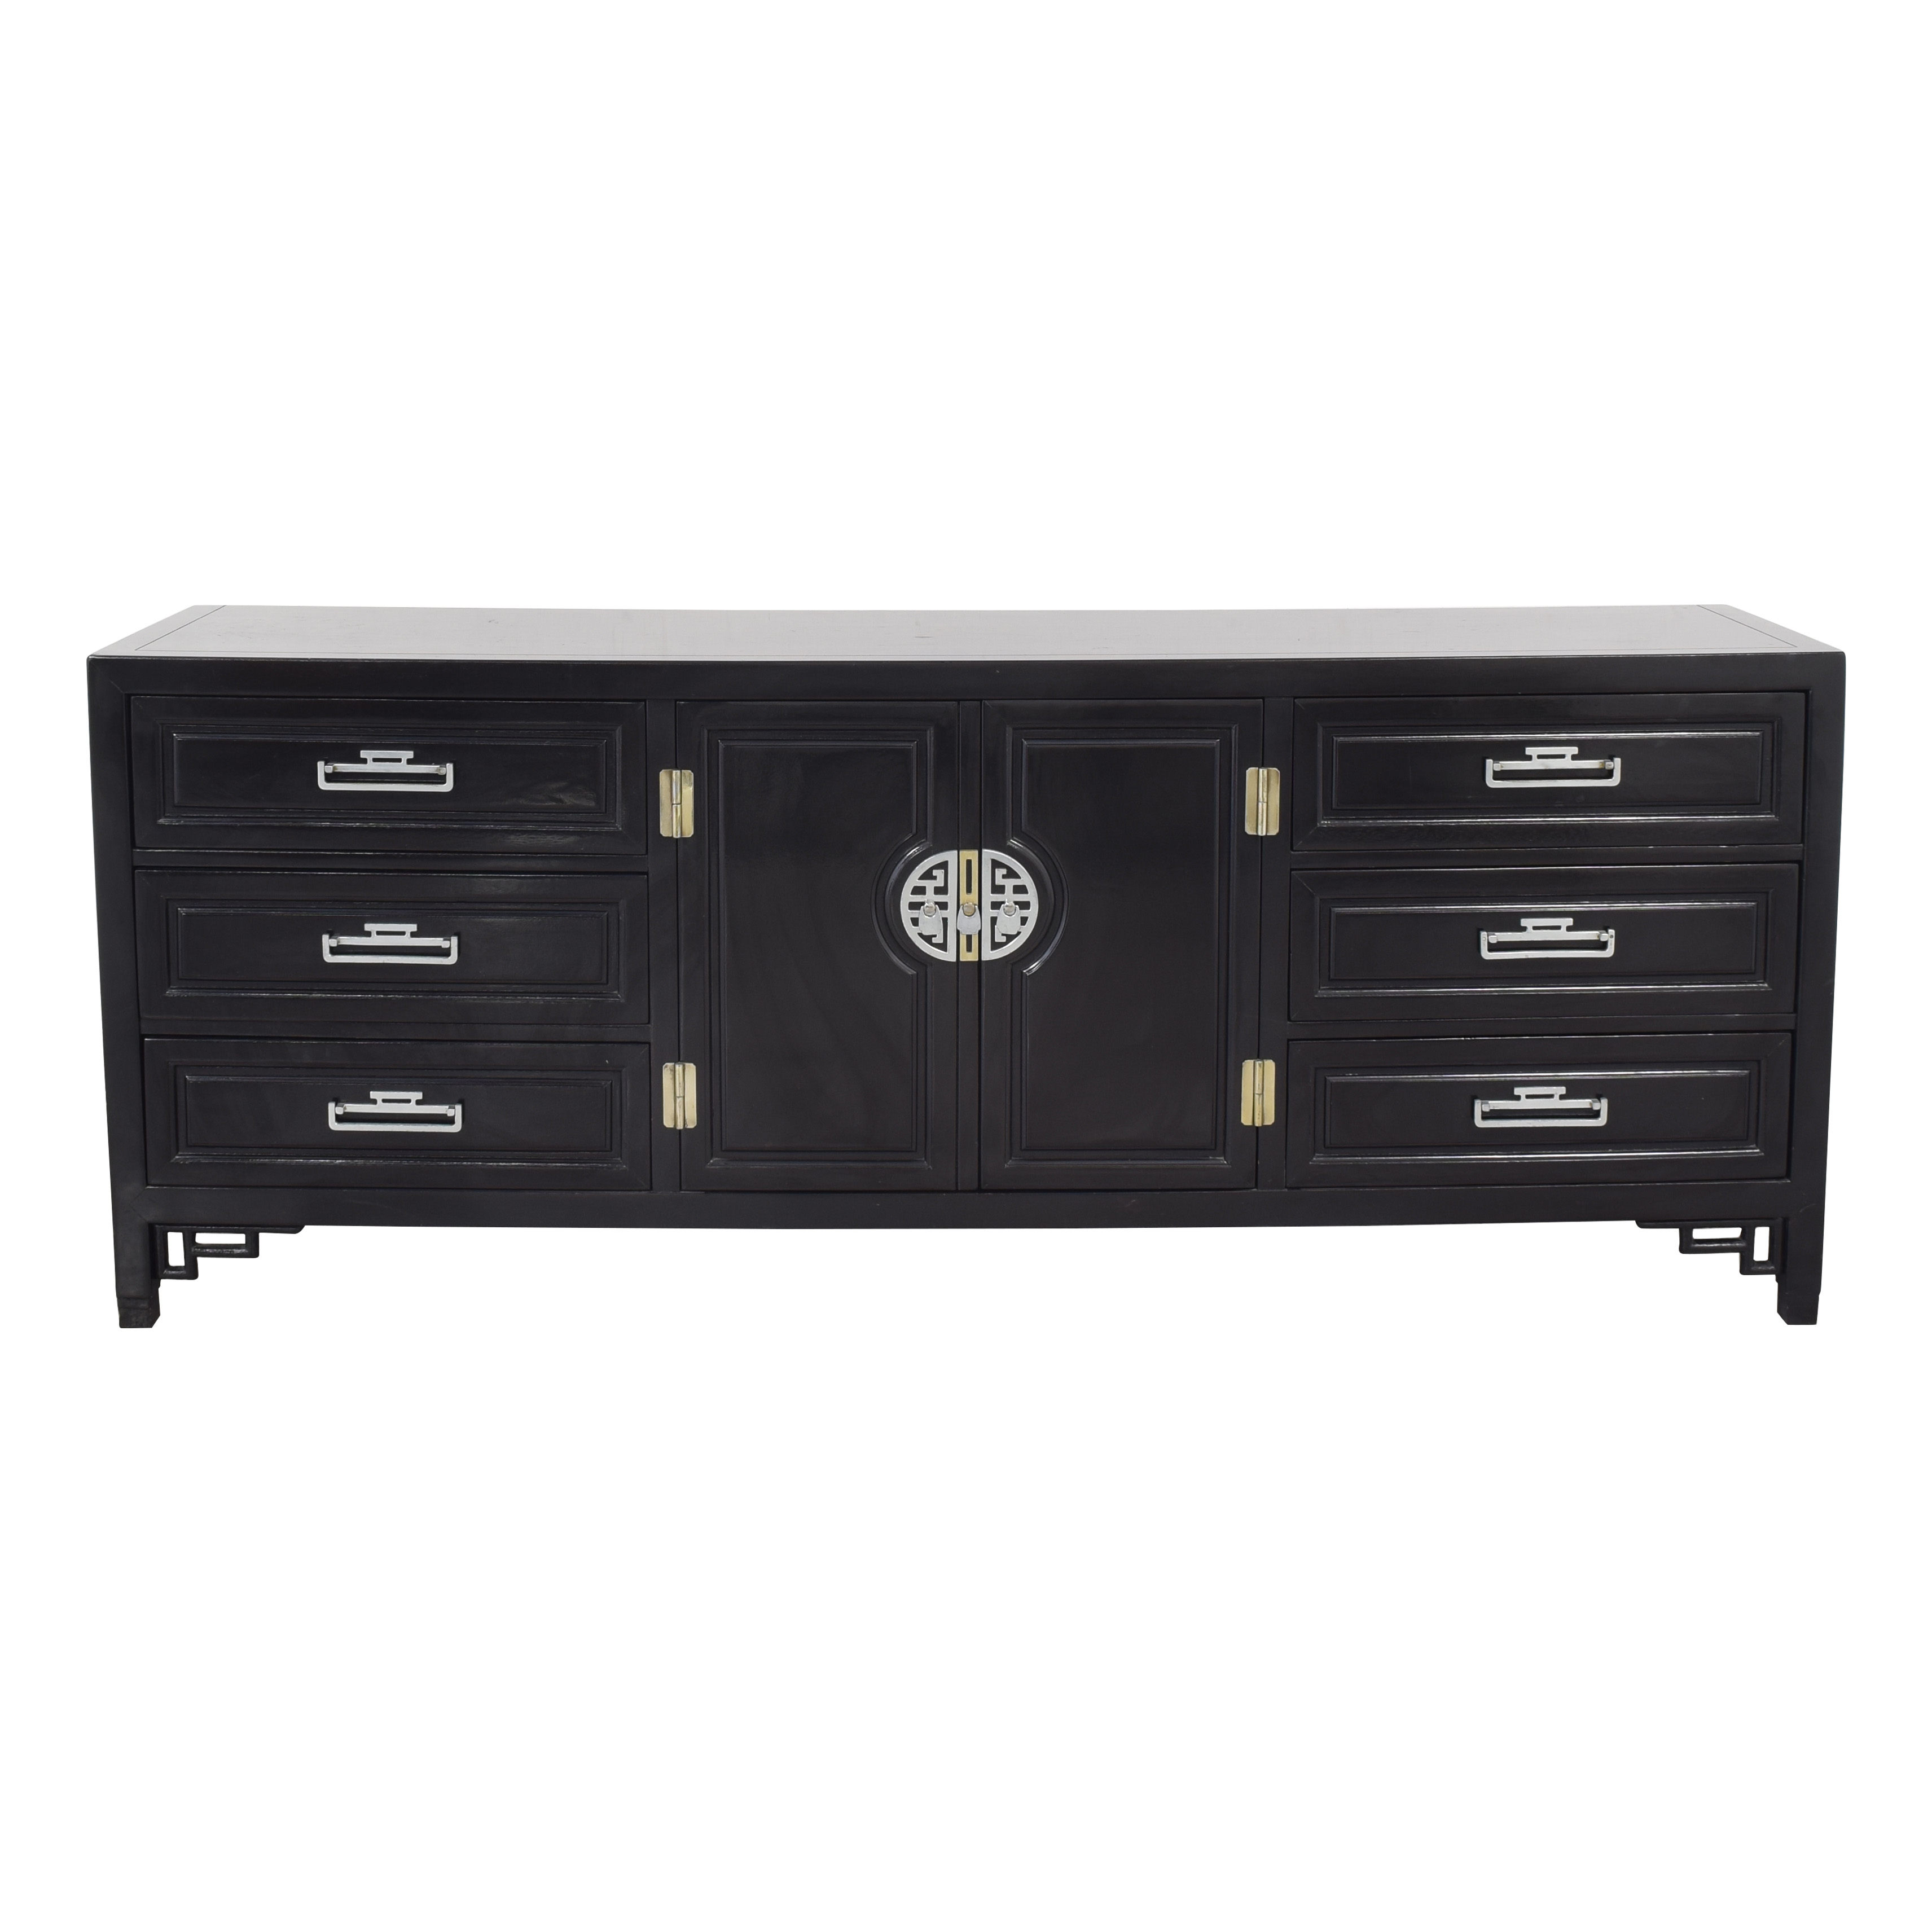 AllModern AllModern Nine Drawer Sideboard discount